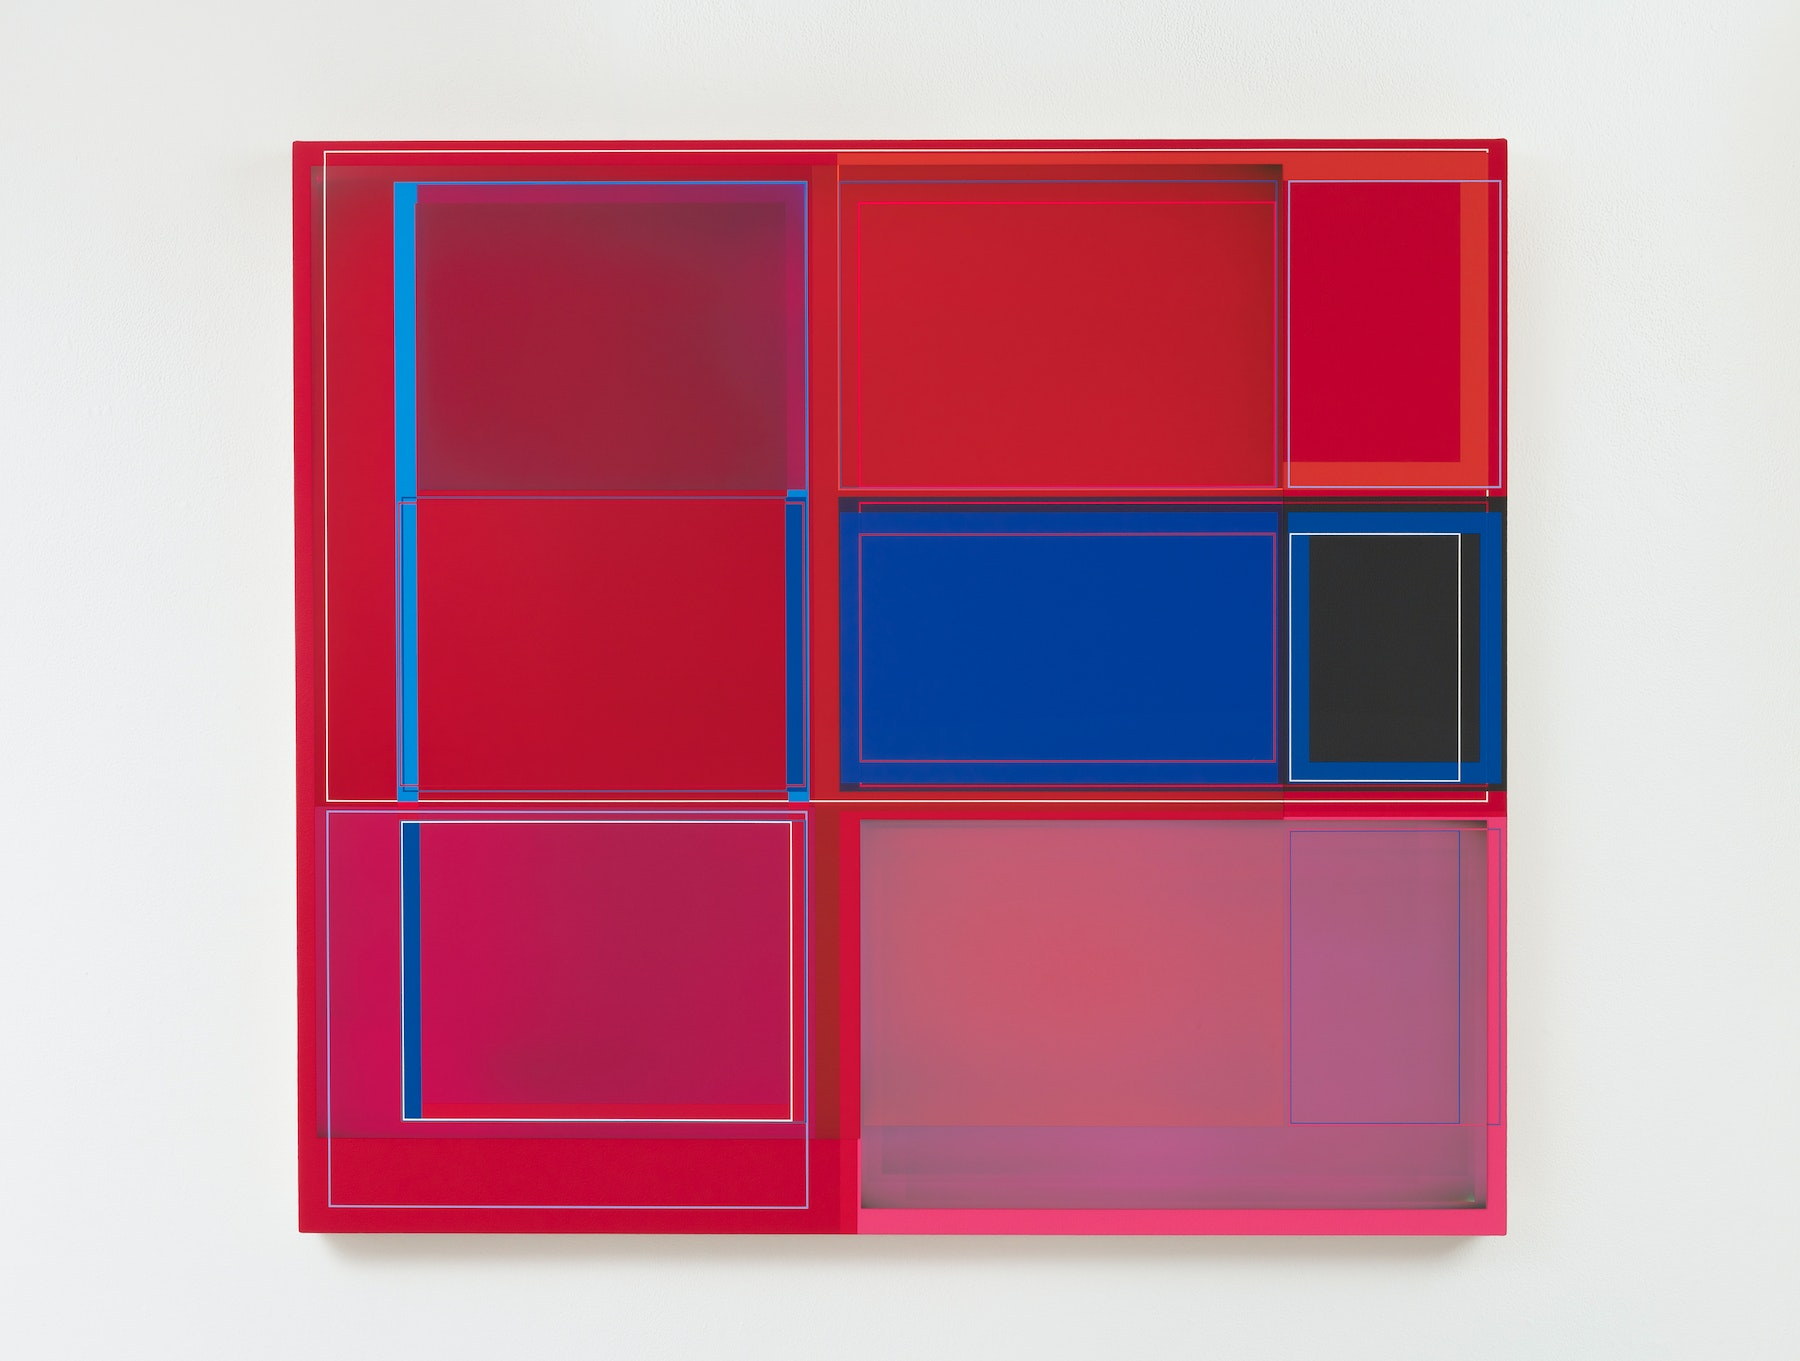 """Patrick Wilson """"Disrupted Grid (Red),"""" 2020 Acrylic on canvas 37 x 41"""" [HxW] (93.98 x 104.14 cm) Inventory #WIL564 Courtesy of the artist and Vielmetter Los Angeles Photo credit: Robert Wedemeyer"""